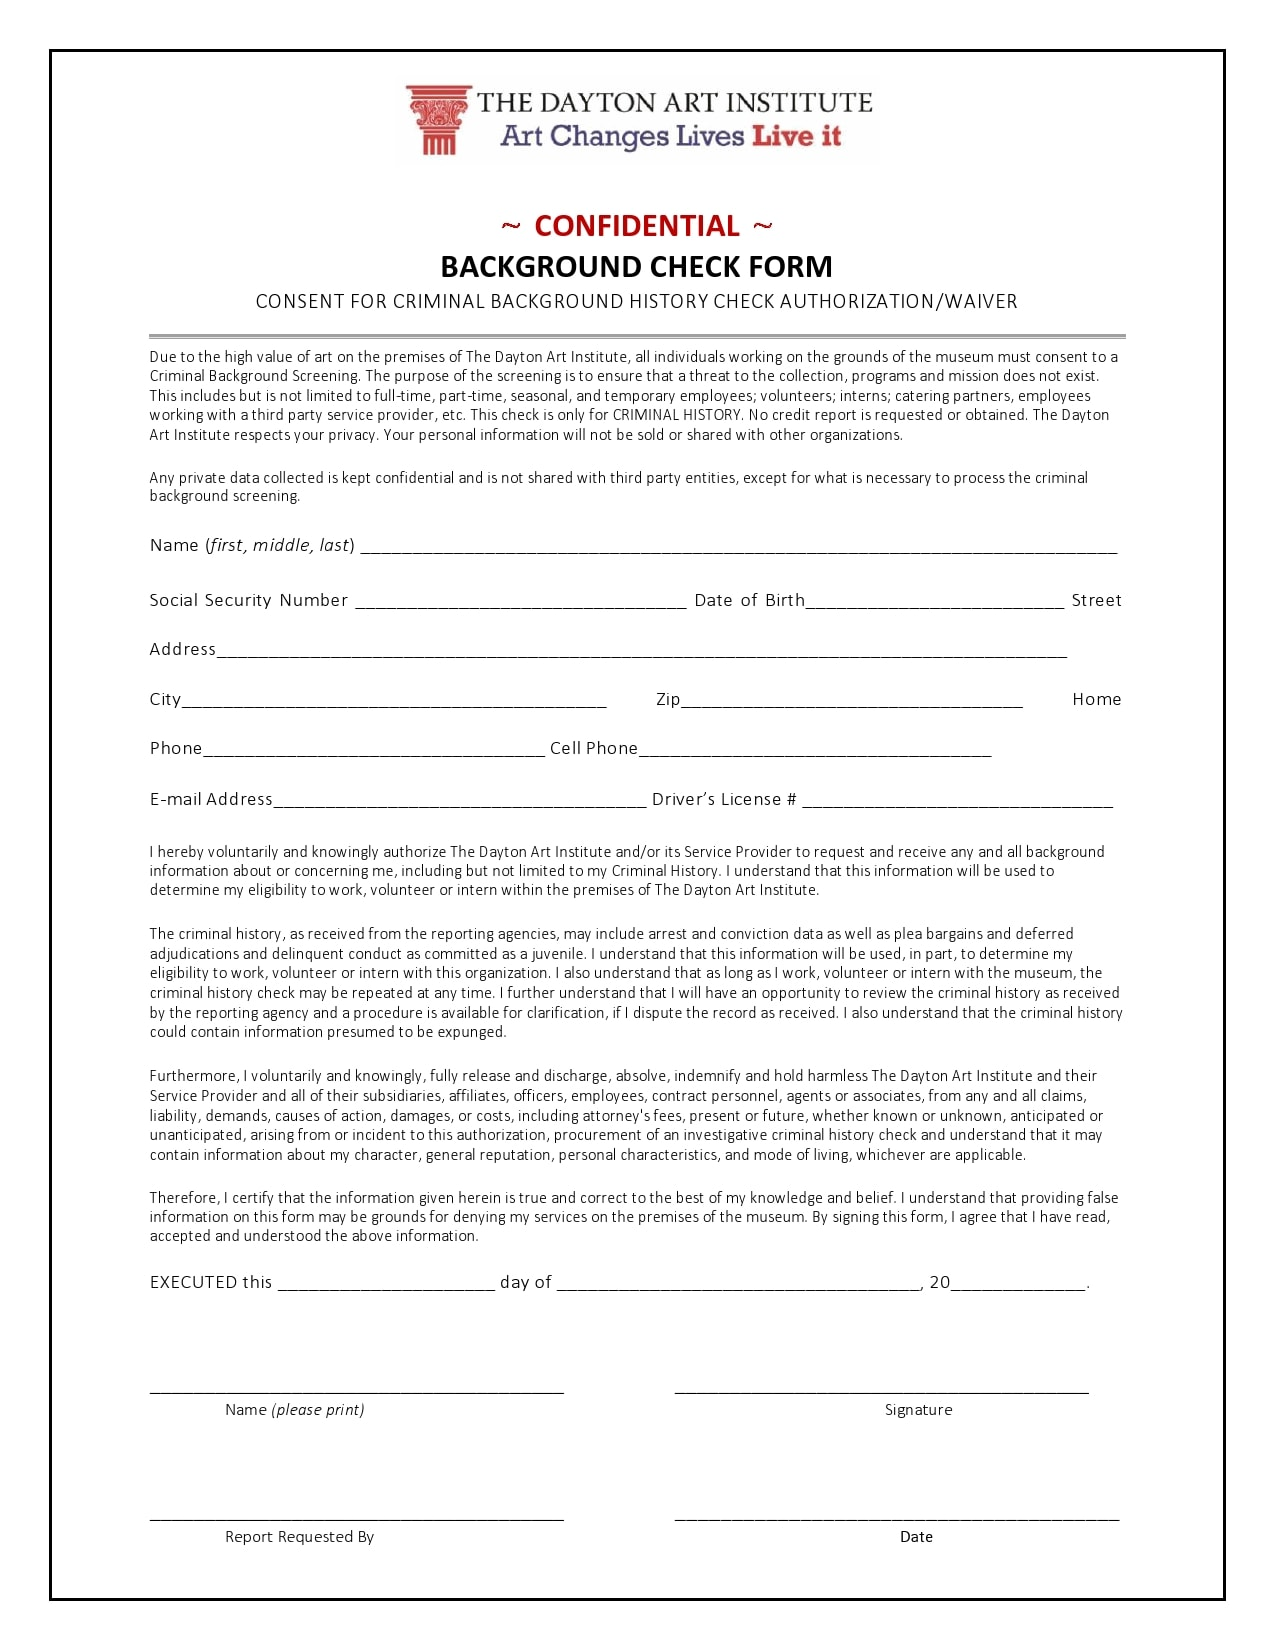 background check form 12